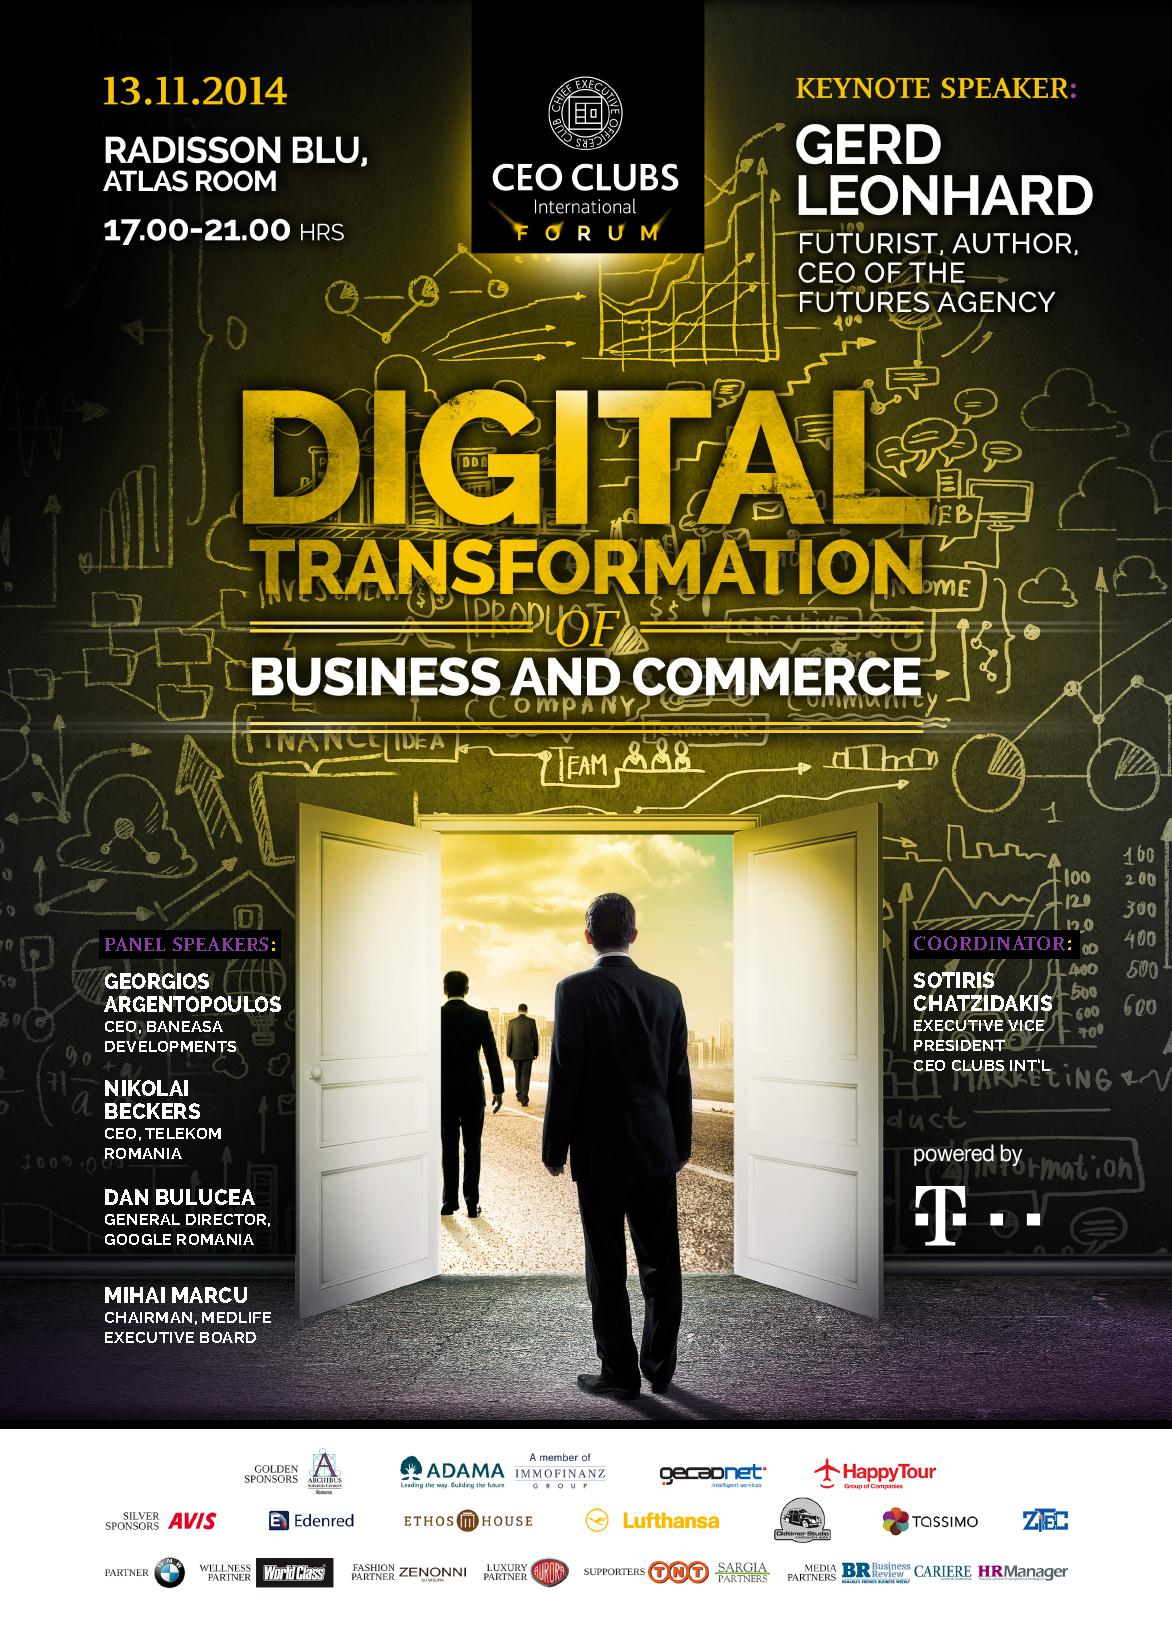 6th CEO Clubs Forum: Digital Transformation of Business and Commerce